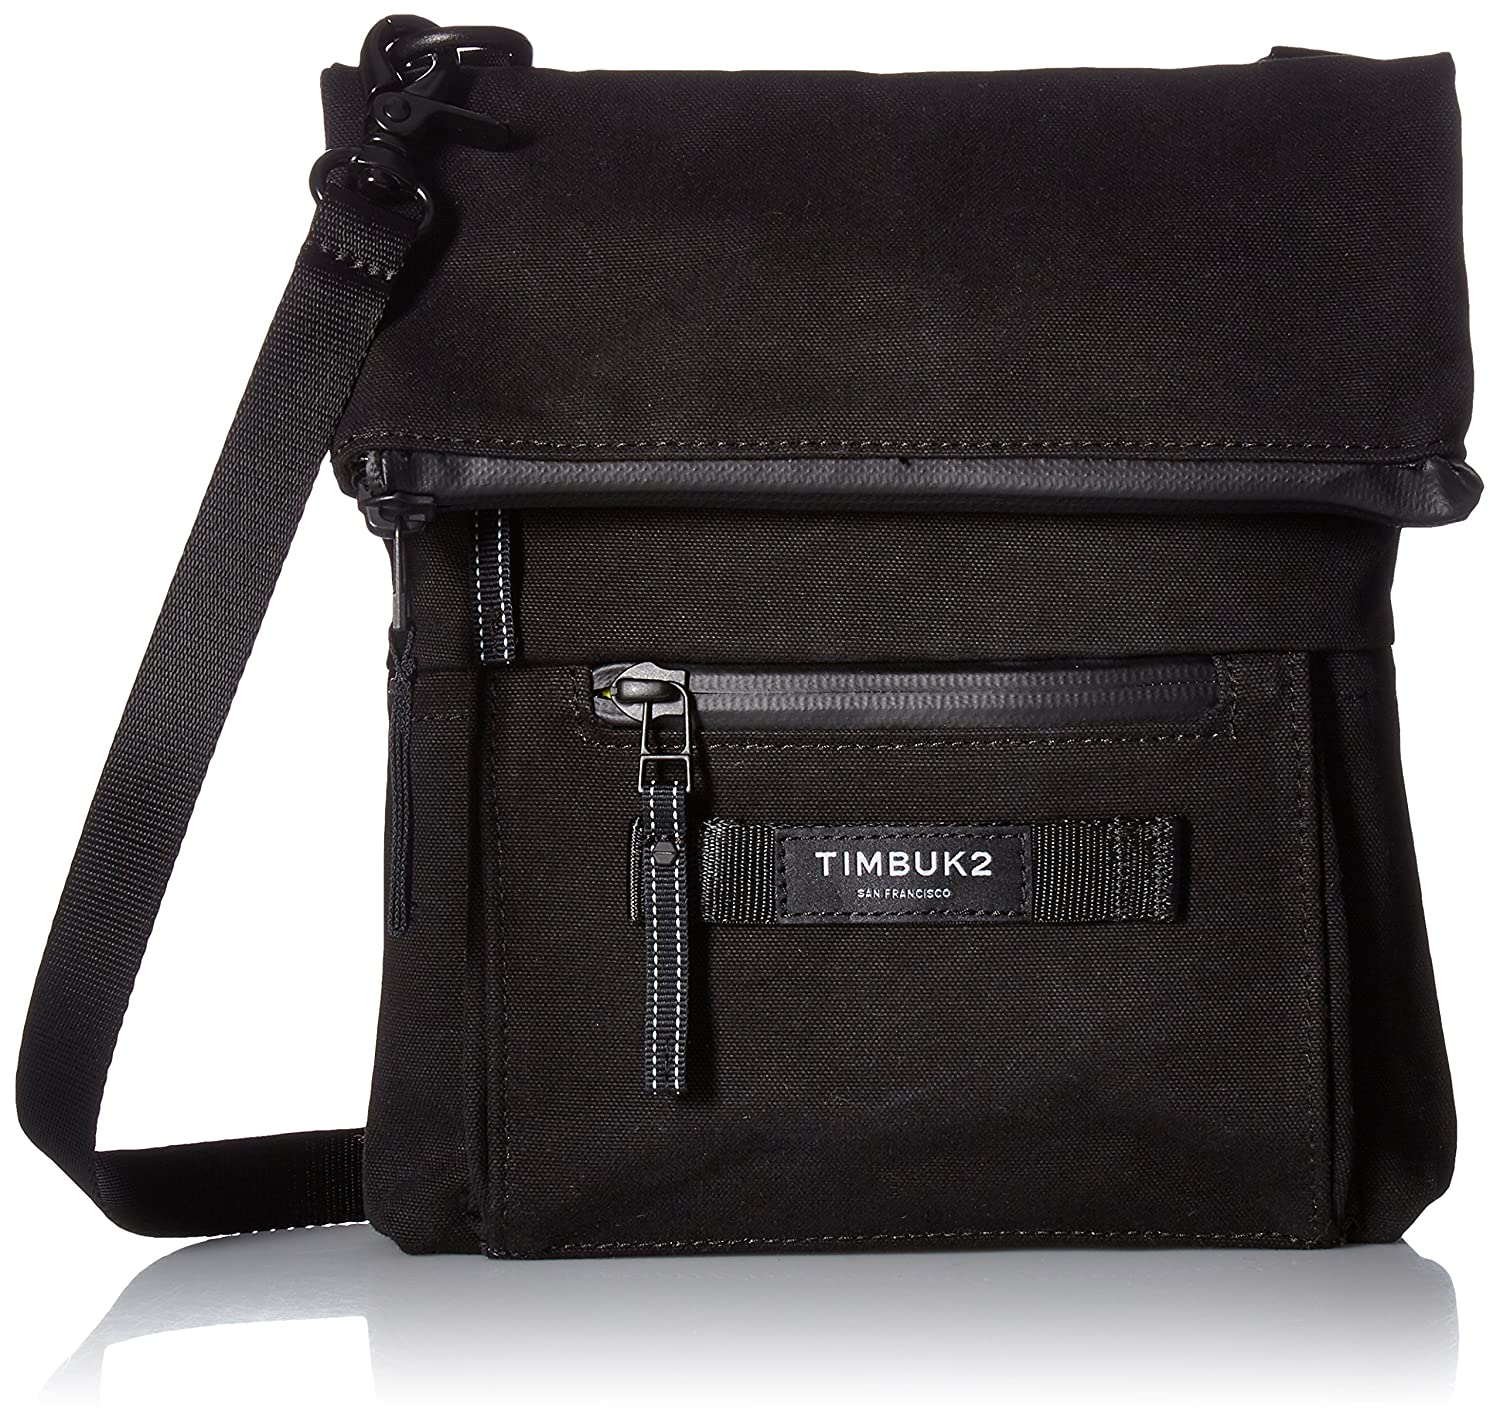 4154859a5 Timbuk2 Cargo Crossbody Canvas, Jet Black, One Size: Amazon.in: Sports,  Fitness & Outdoors